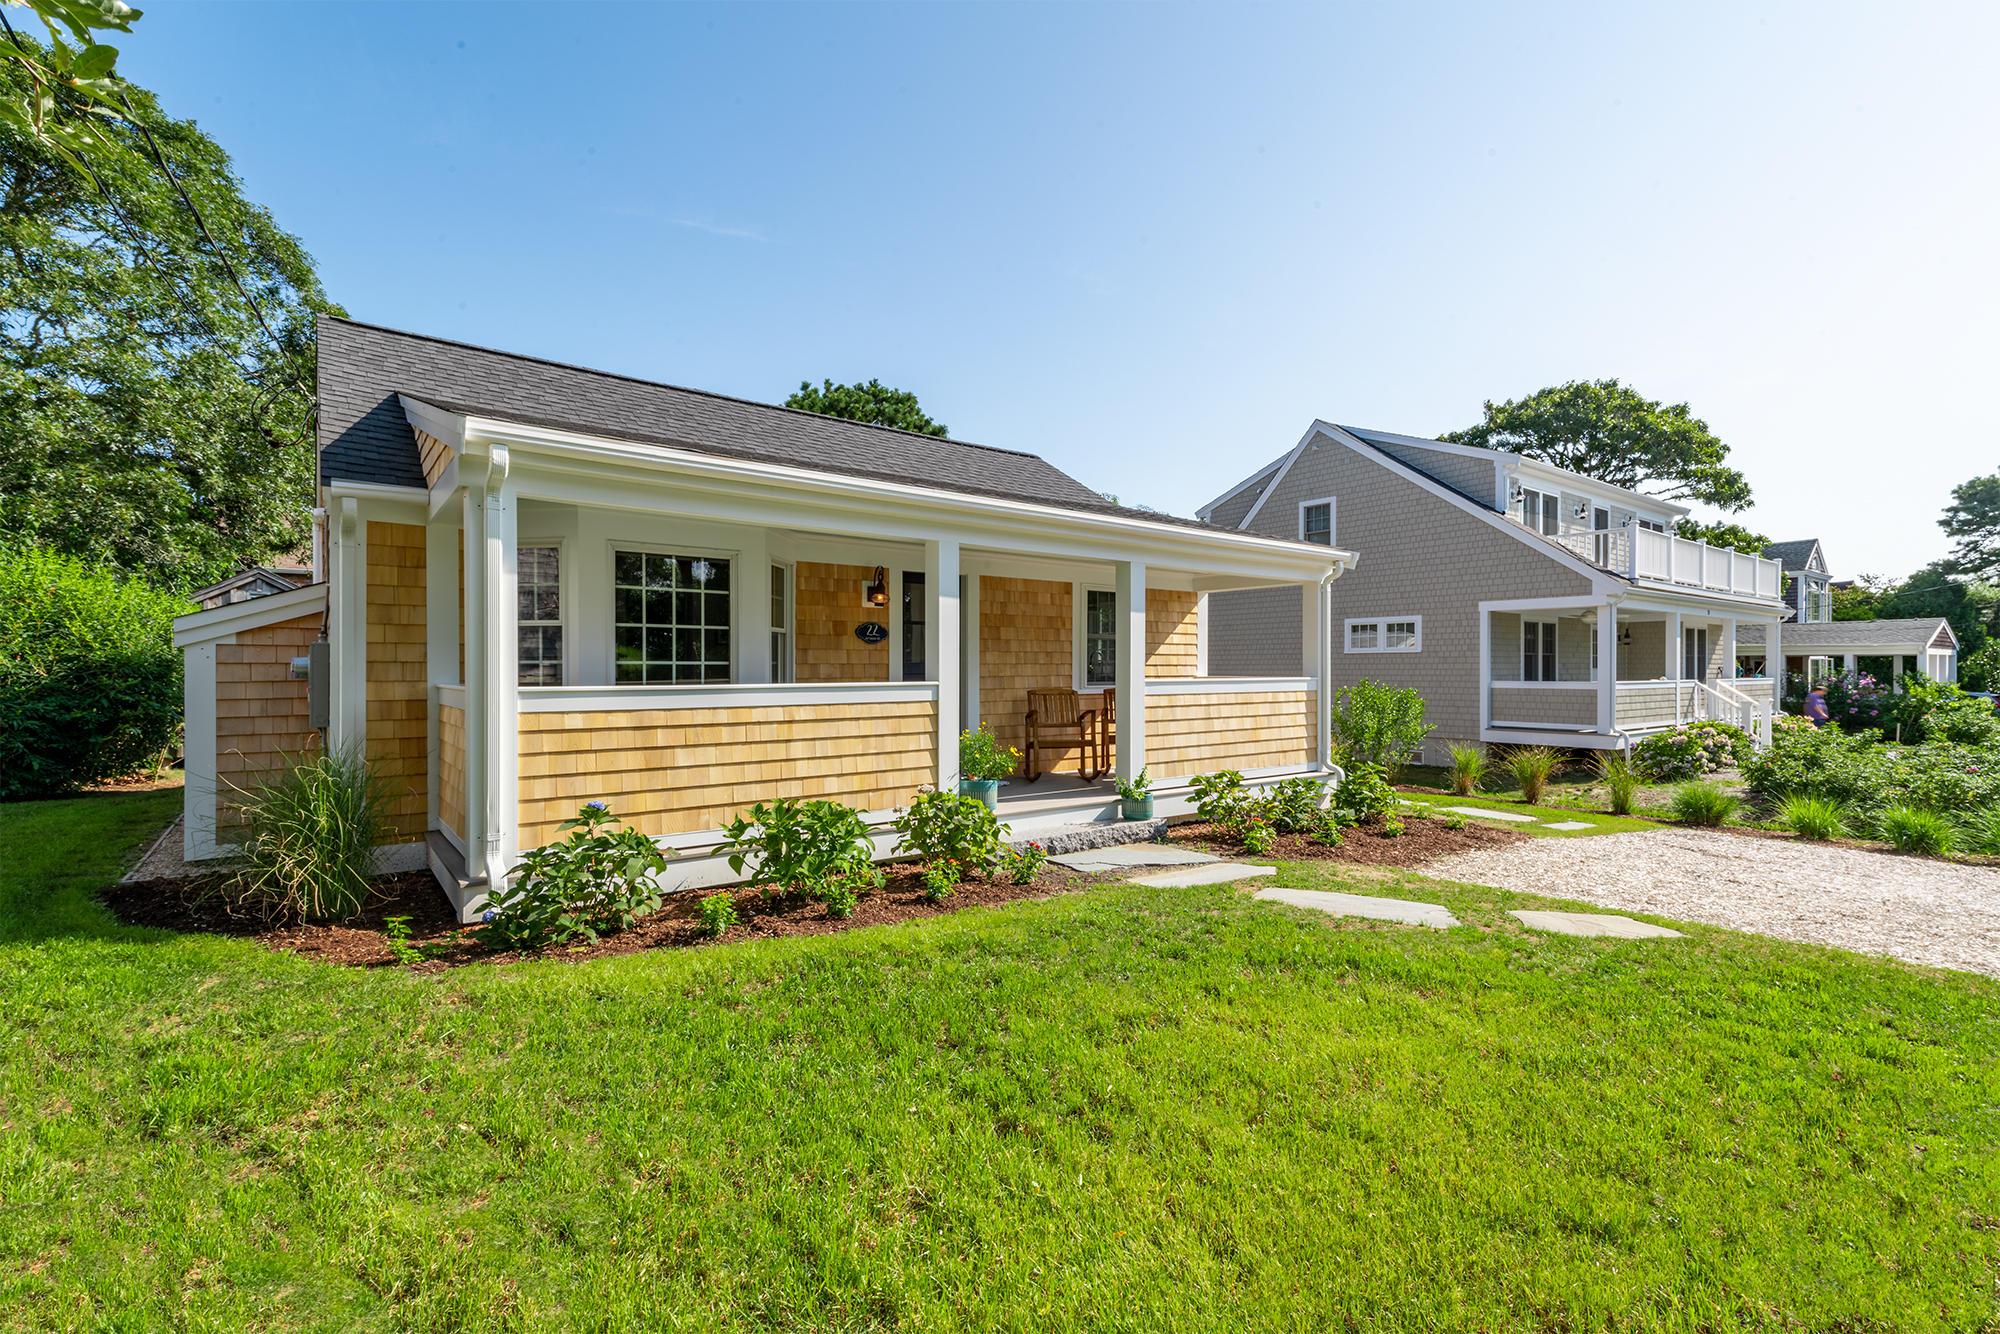 22 Patterson Road, Chatham MA, 02633 details